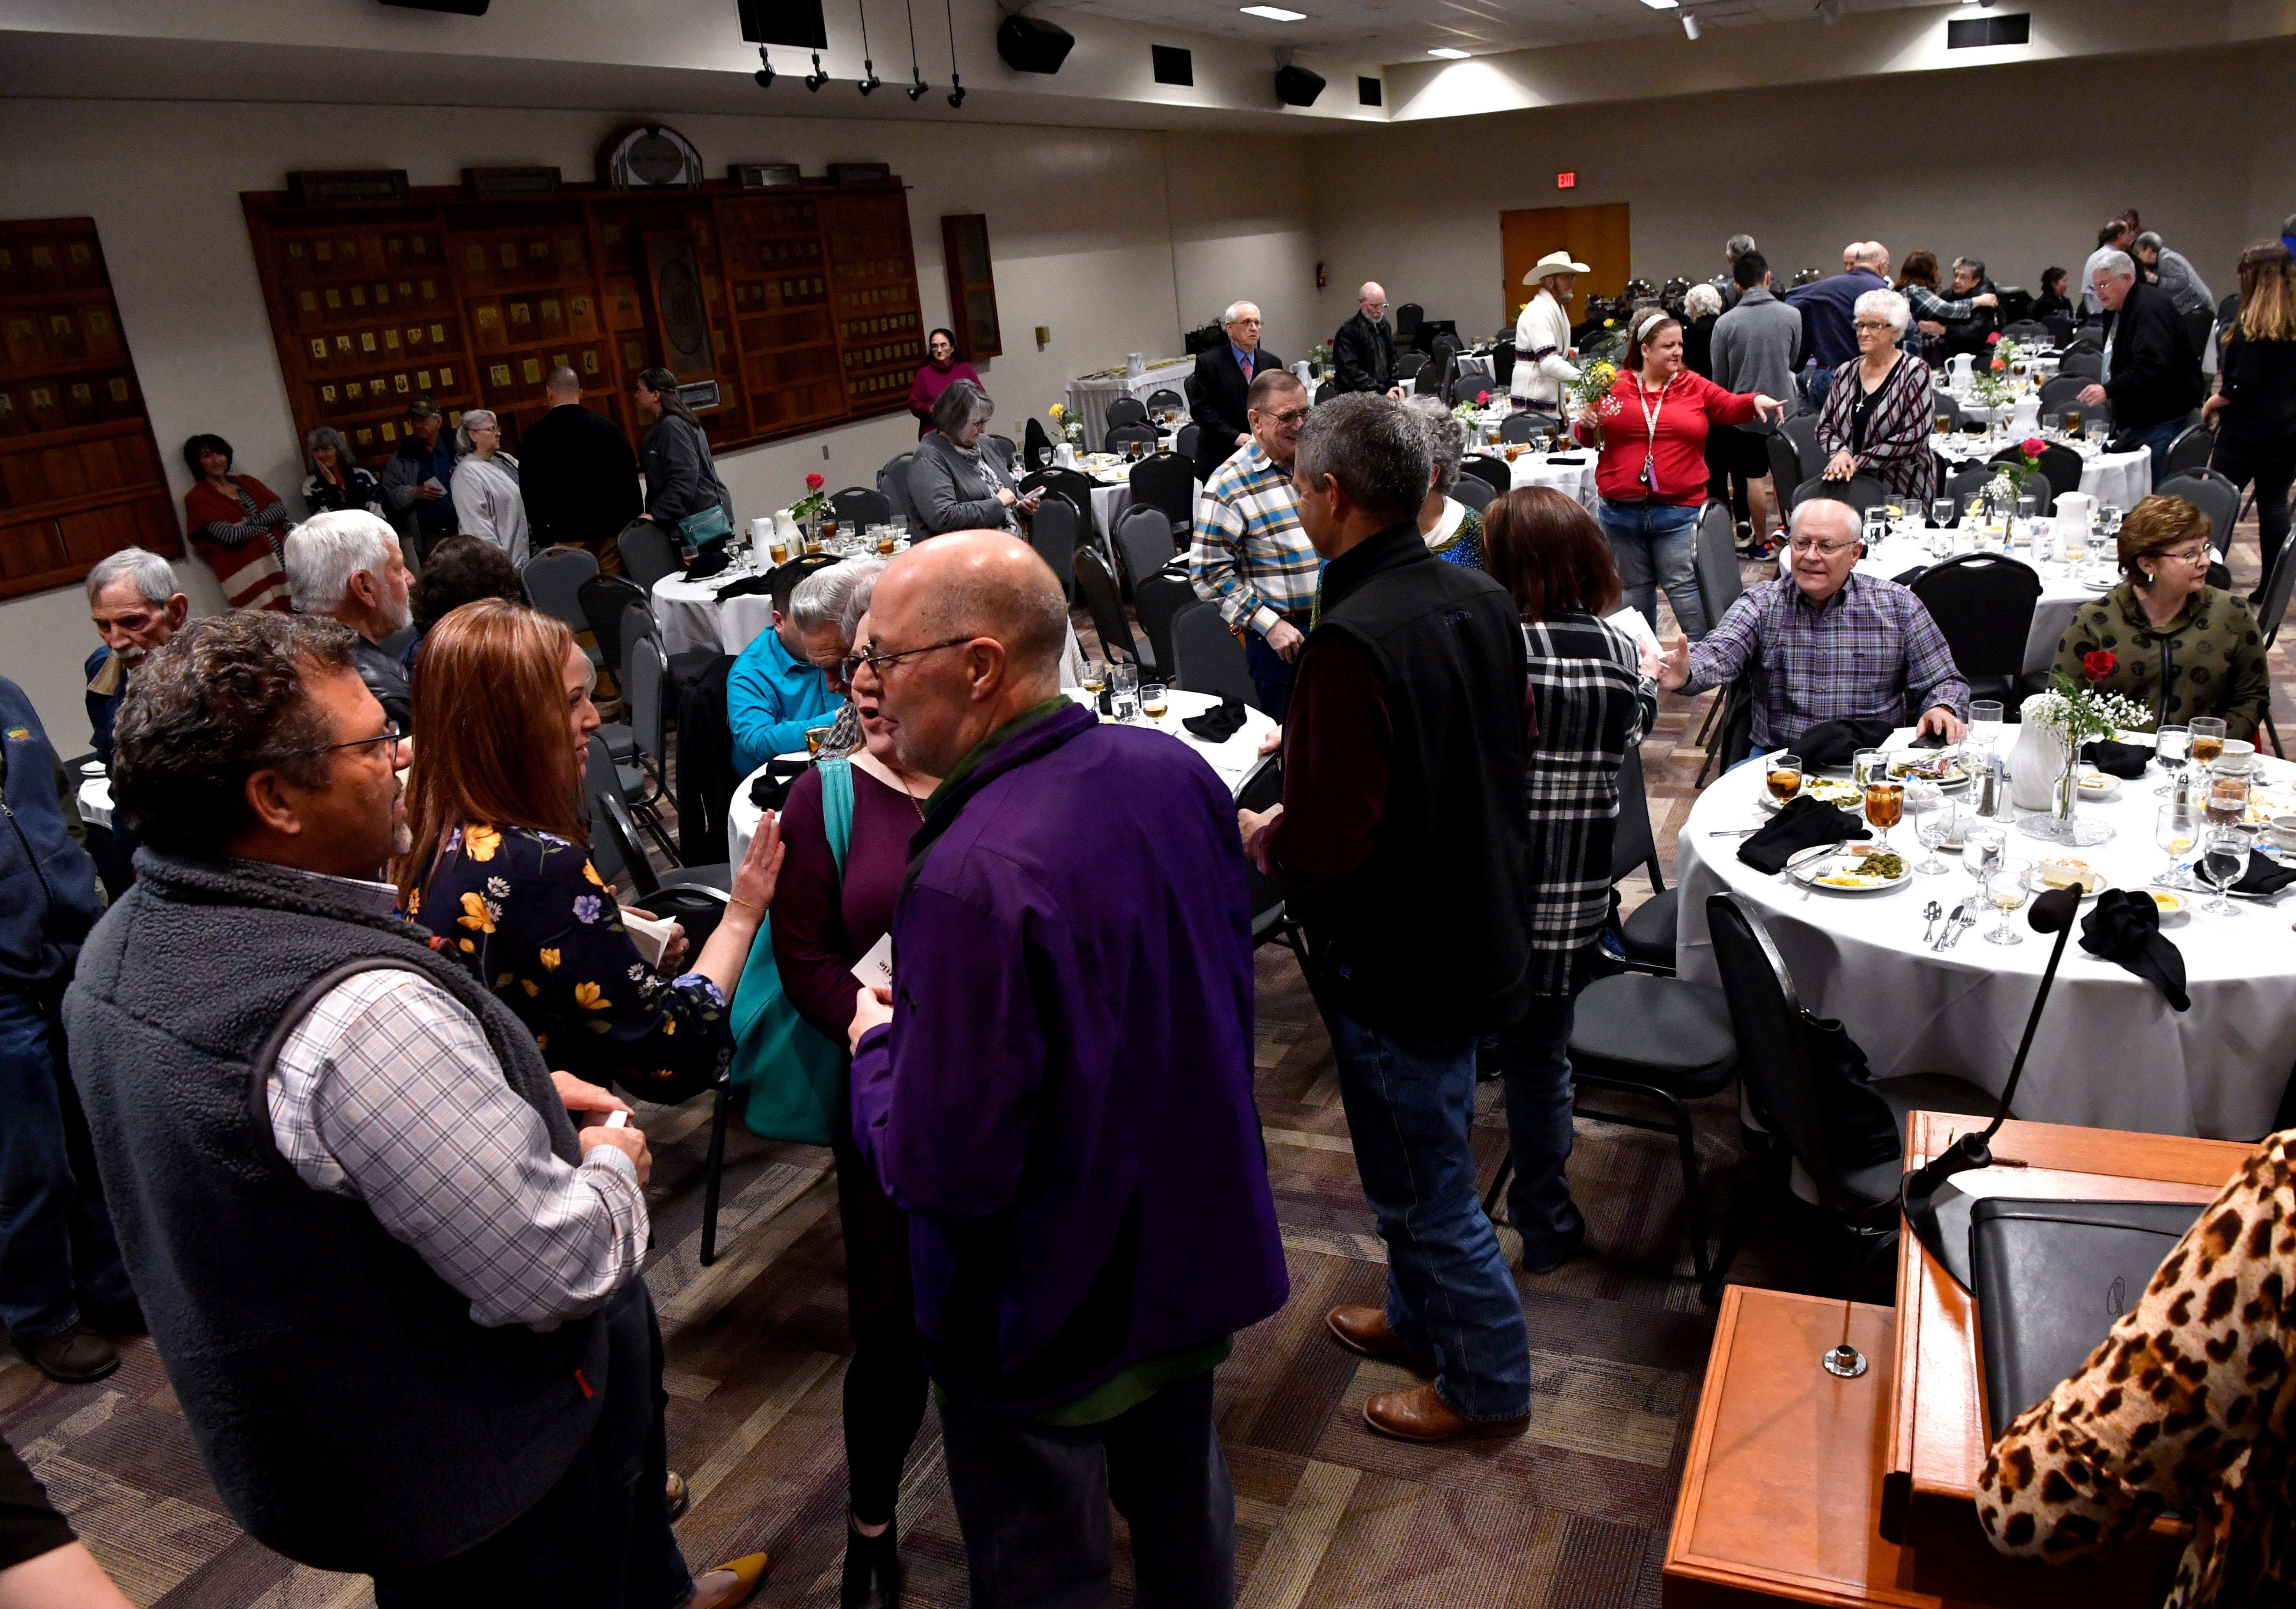 Attendees mingle at Thursday's recognition dinner at McMurry University. Hendrick Regional Blood Center honored donors who have given 5 gallons or more